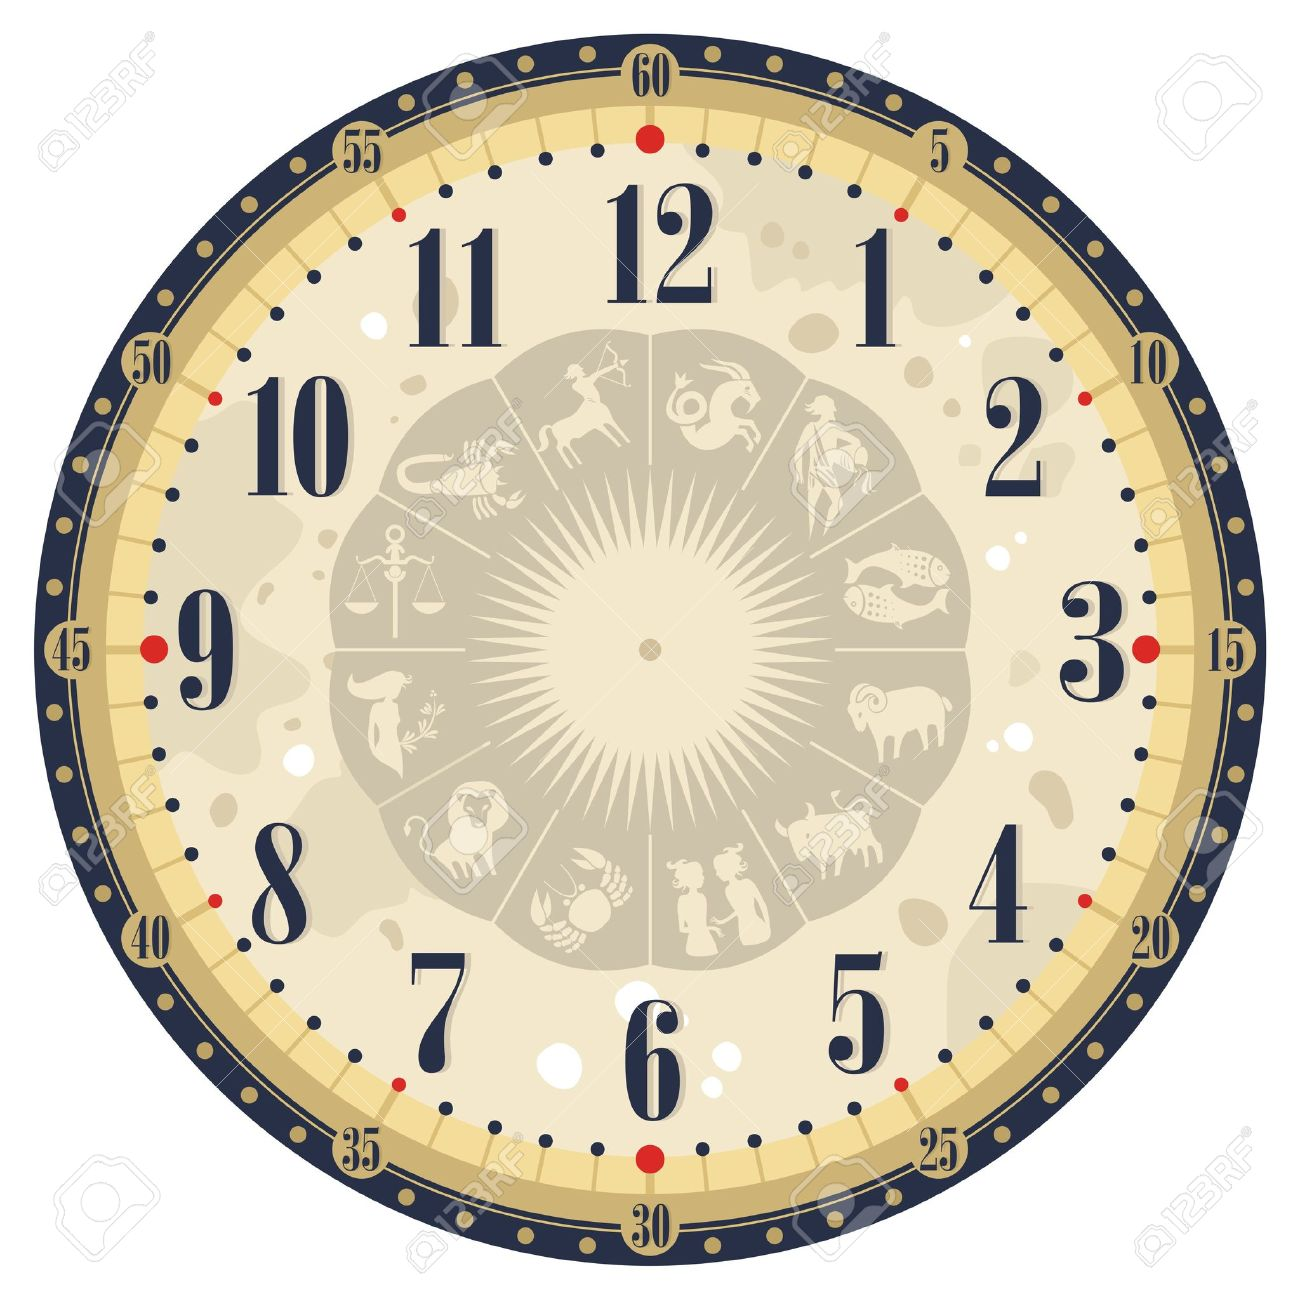 Vintage Clock Face Template With Zodiac Signs Royalty Free – Clock Face Template